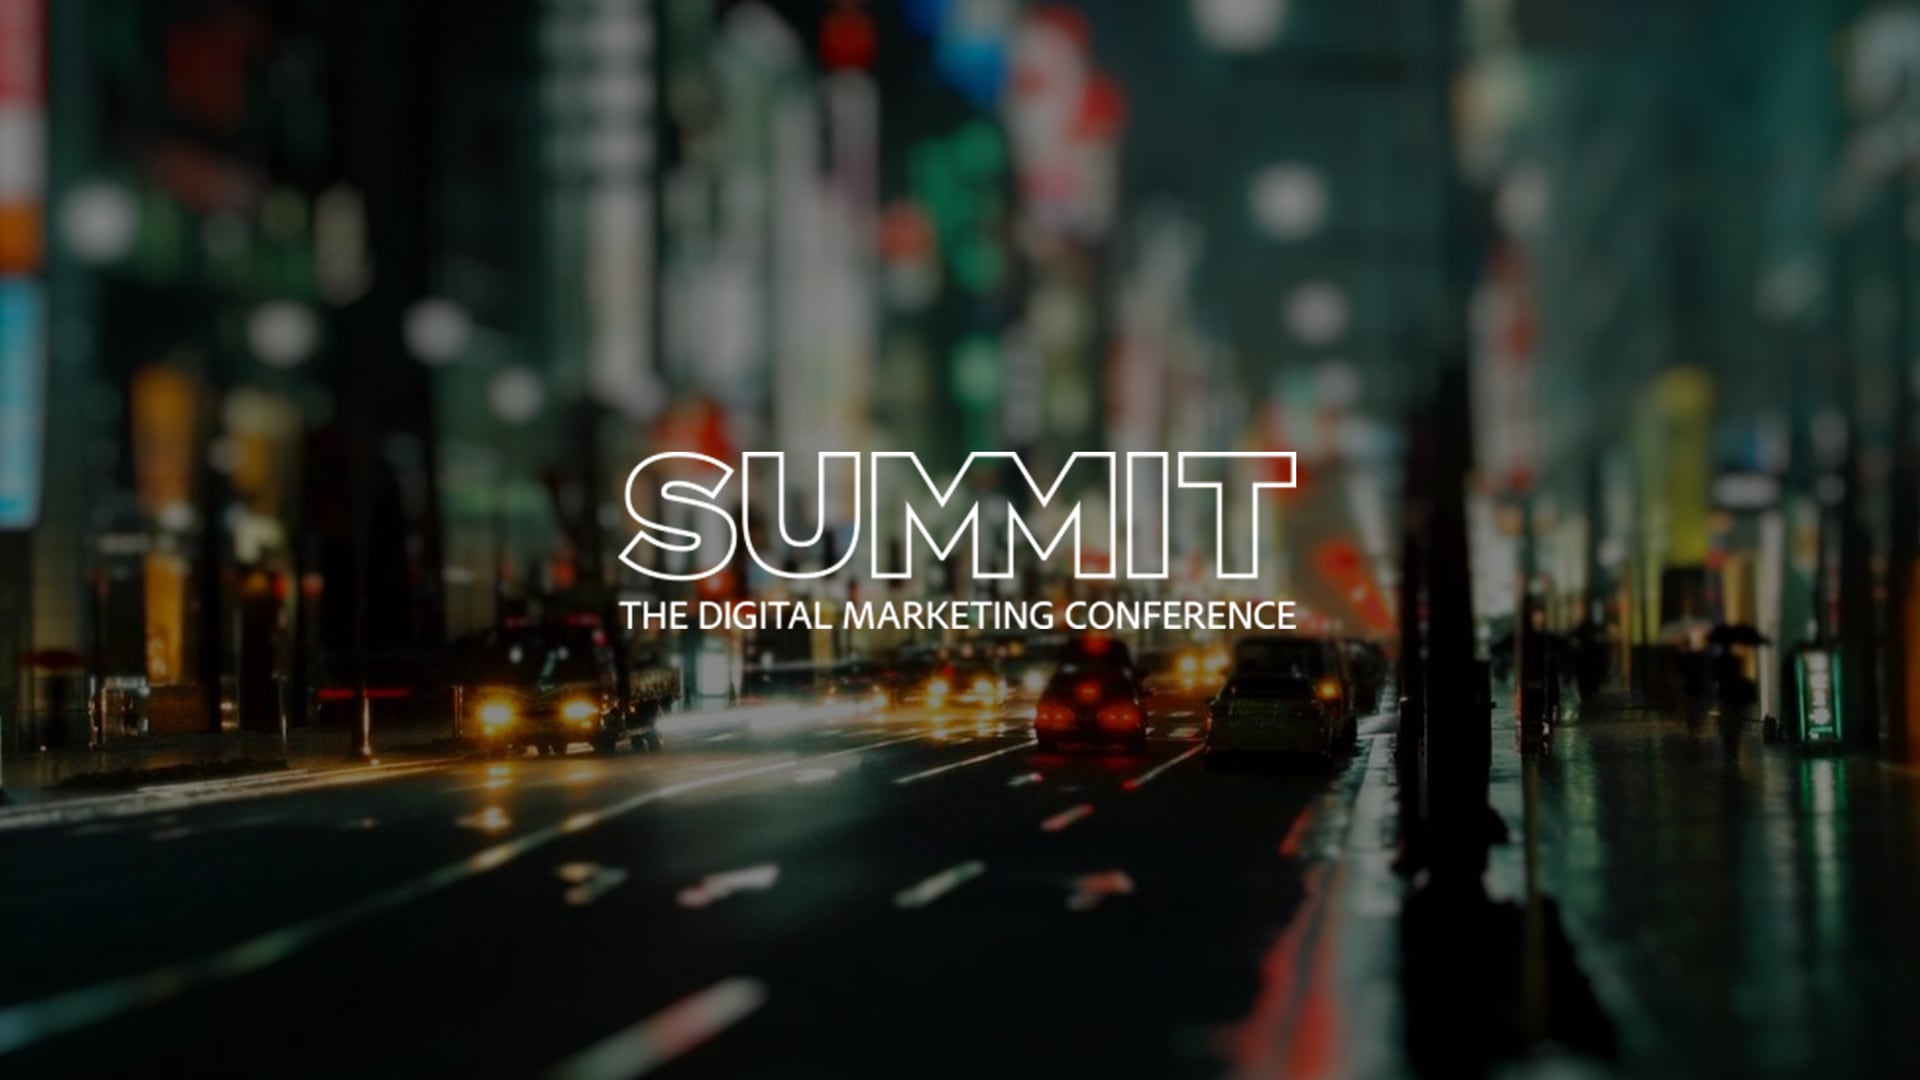 Summit - The Digital Marketing Conference